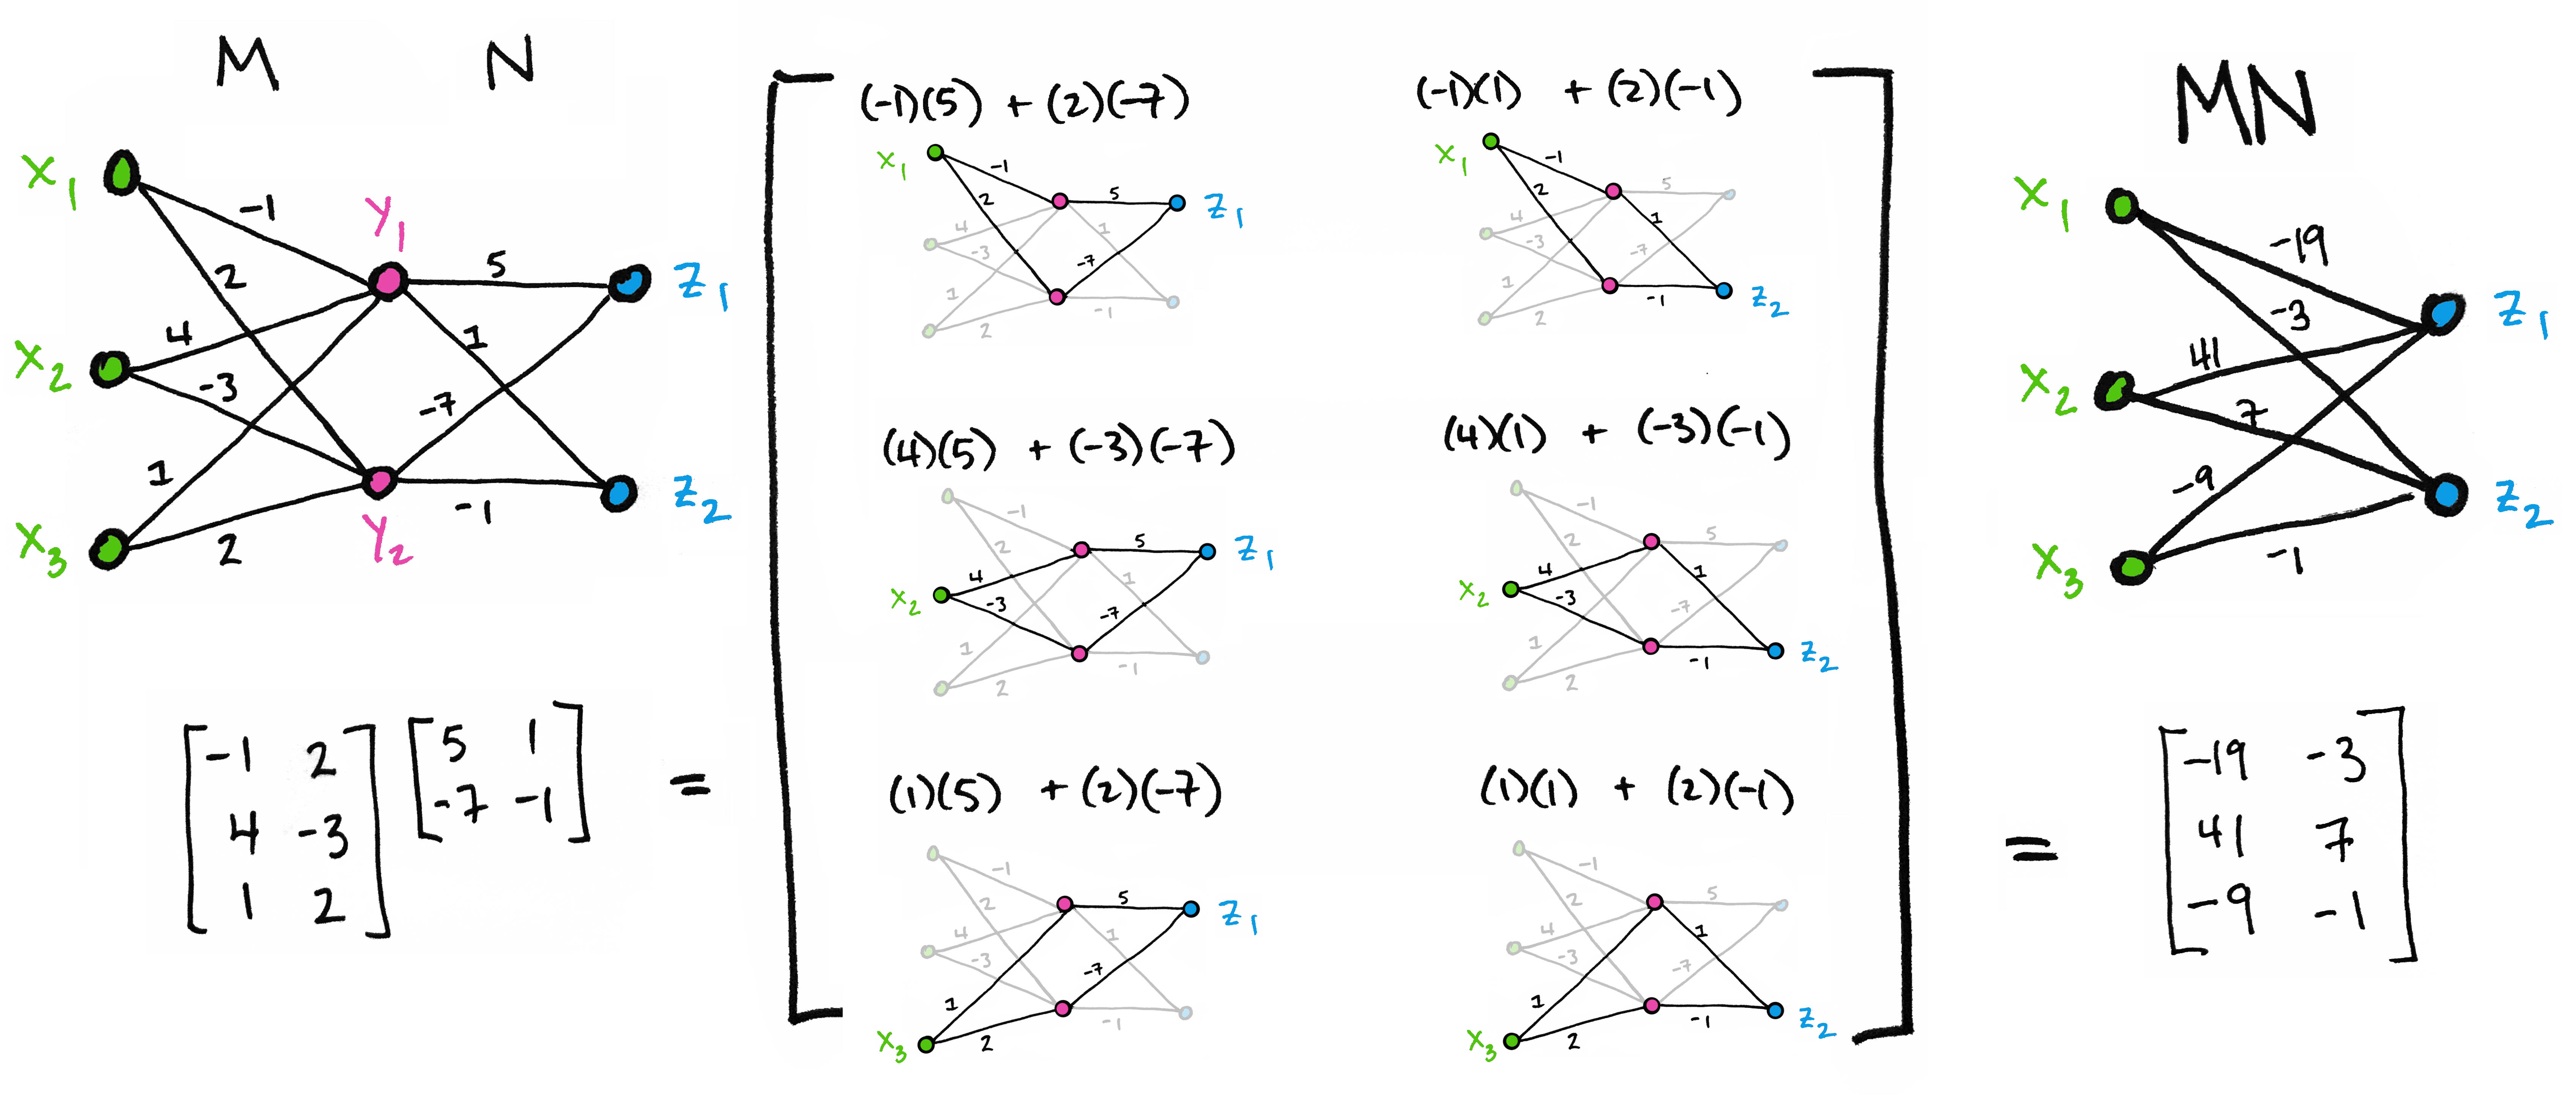 Viewing Matrices & Probability as Graphs